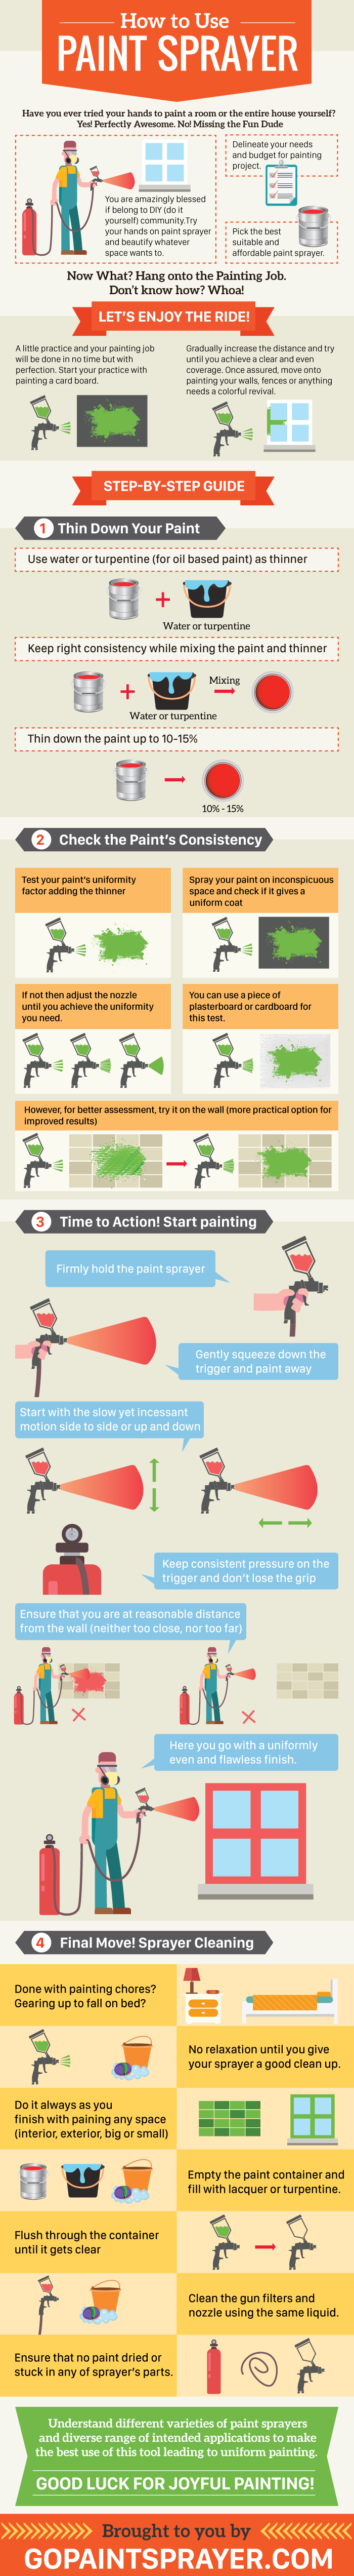 How-to-Use-Paint-Sprayer